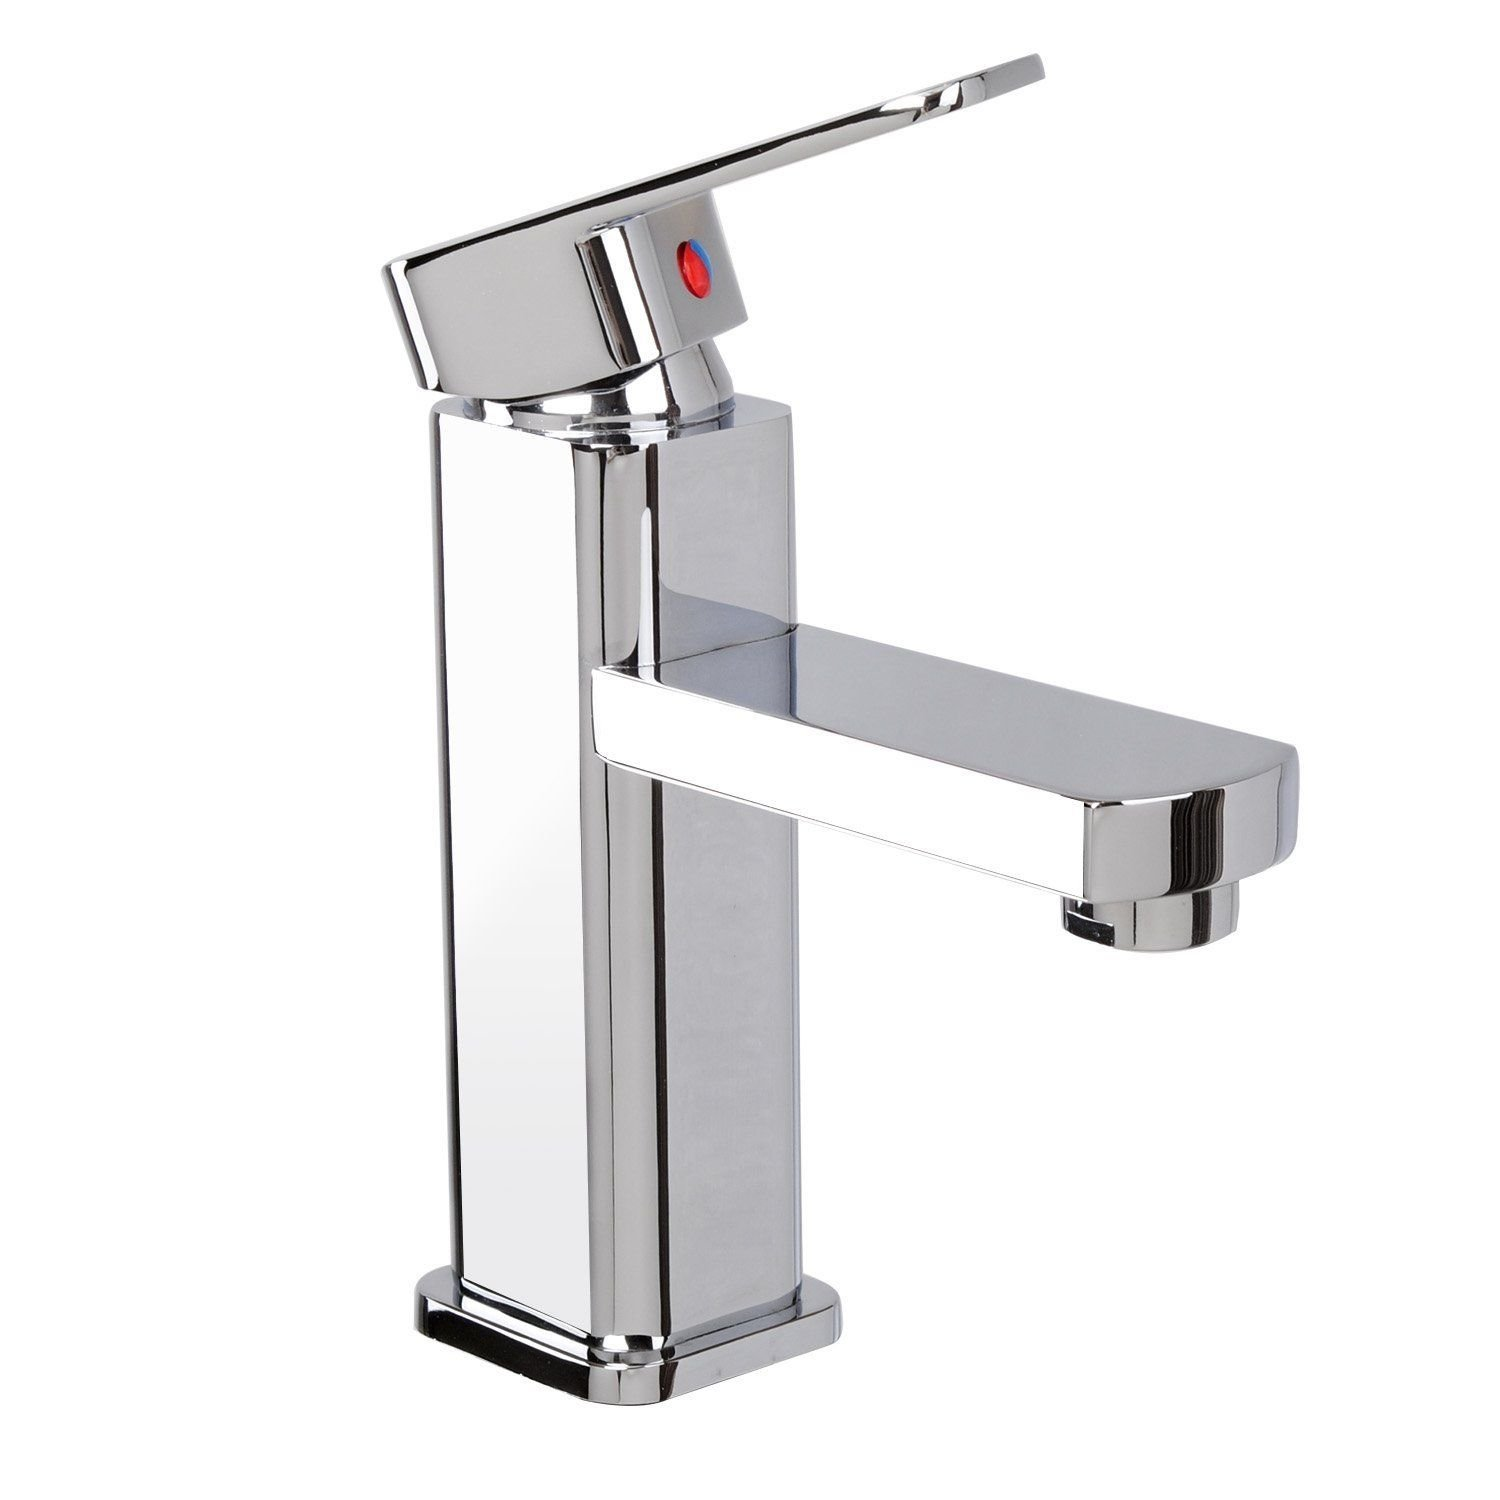 60%OFF NEW SQUARE! Bathroom Sink Faucet Basin Mixer Tap Chrome Brass Single-handle 1 Hole #238